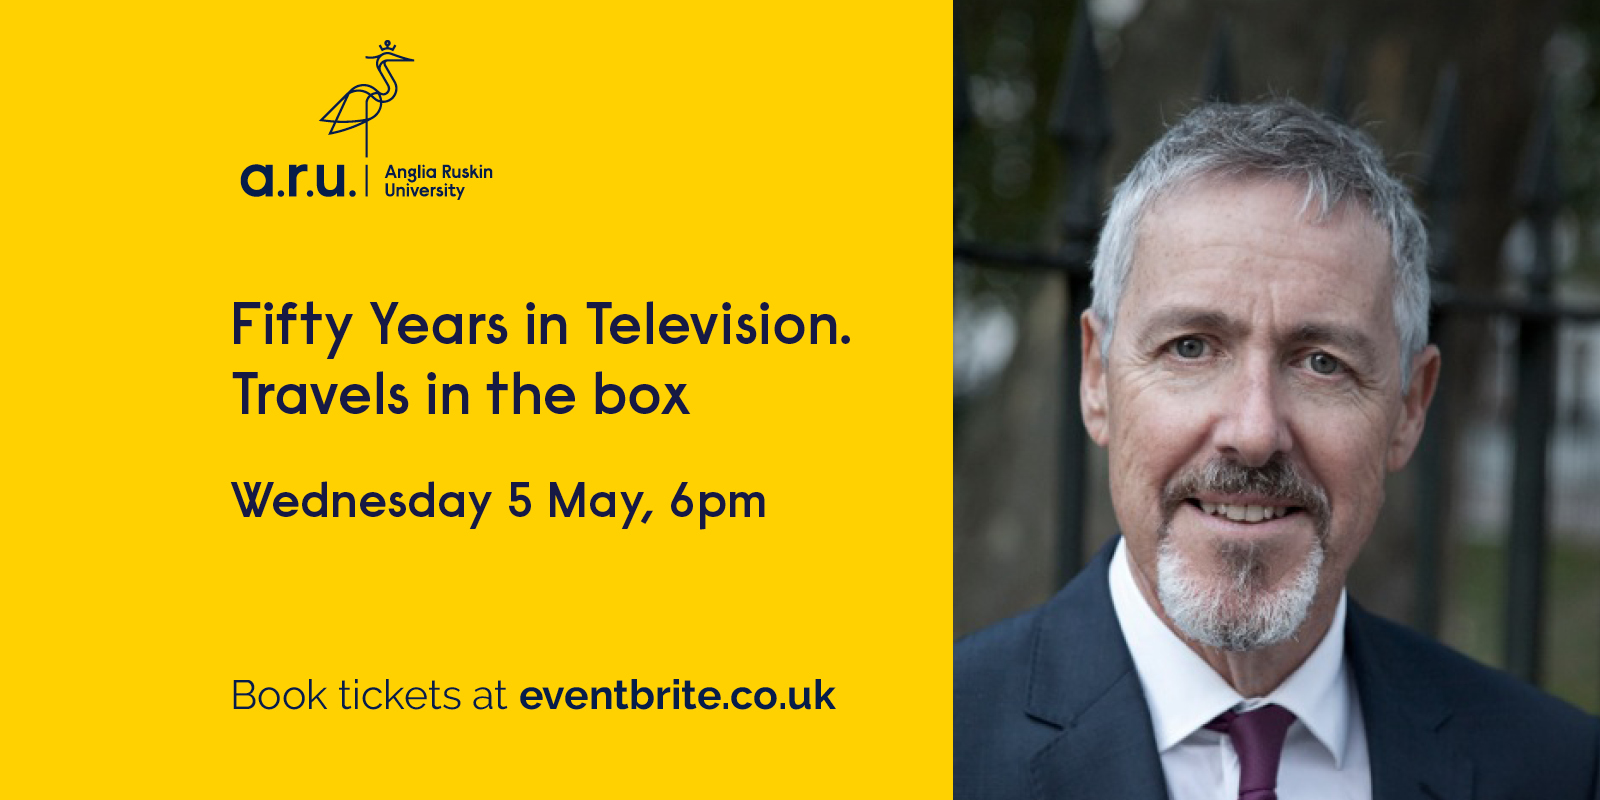 Event artwork featuring a headshot photo of Griff Rhys Jones.